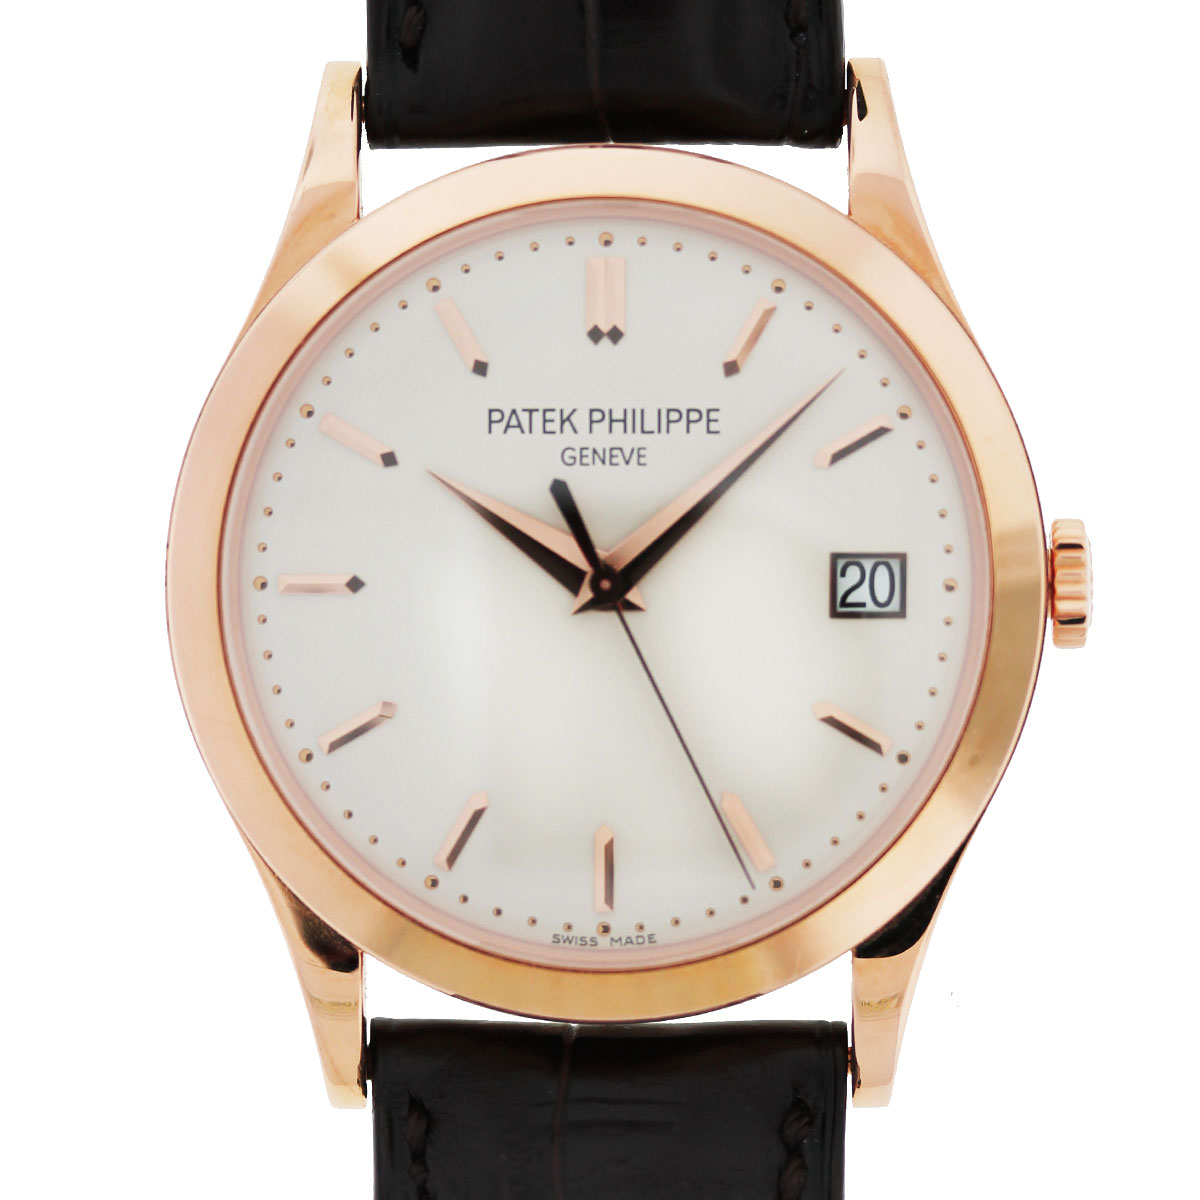 patek philippe watches